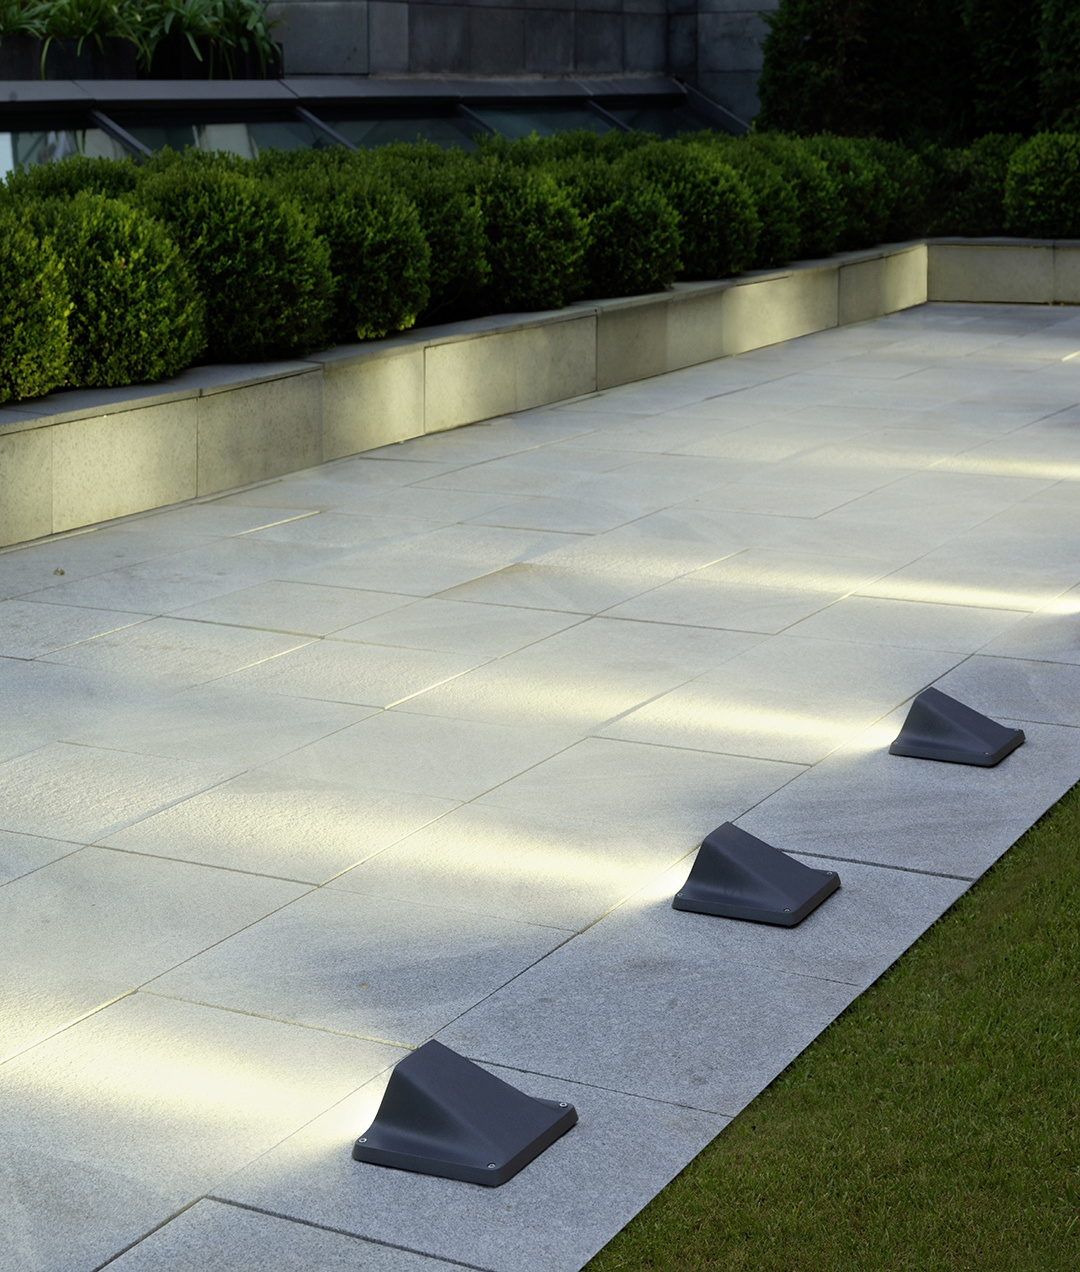 5 Pathway Lighting Tips Ideas Walkway Lights Guide: Exterior Angular Recessed LED Guide Light For Pathways